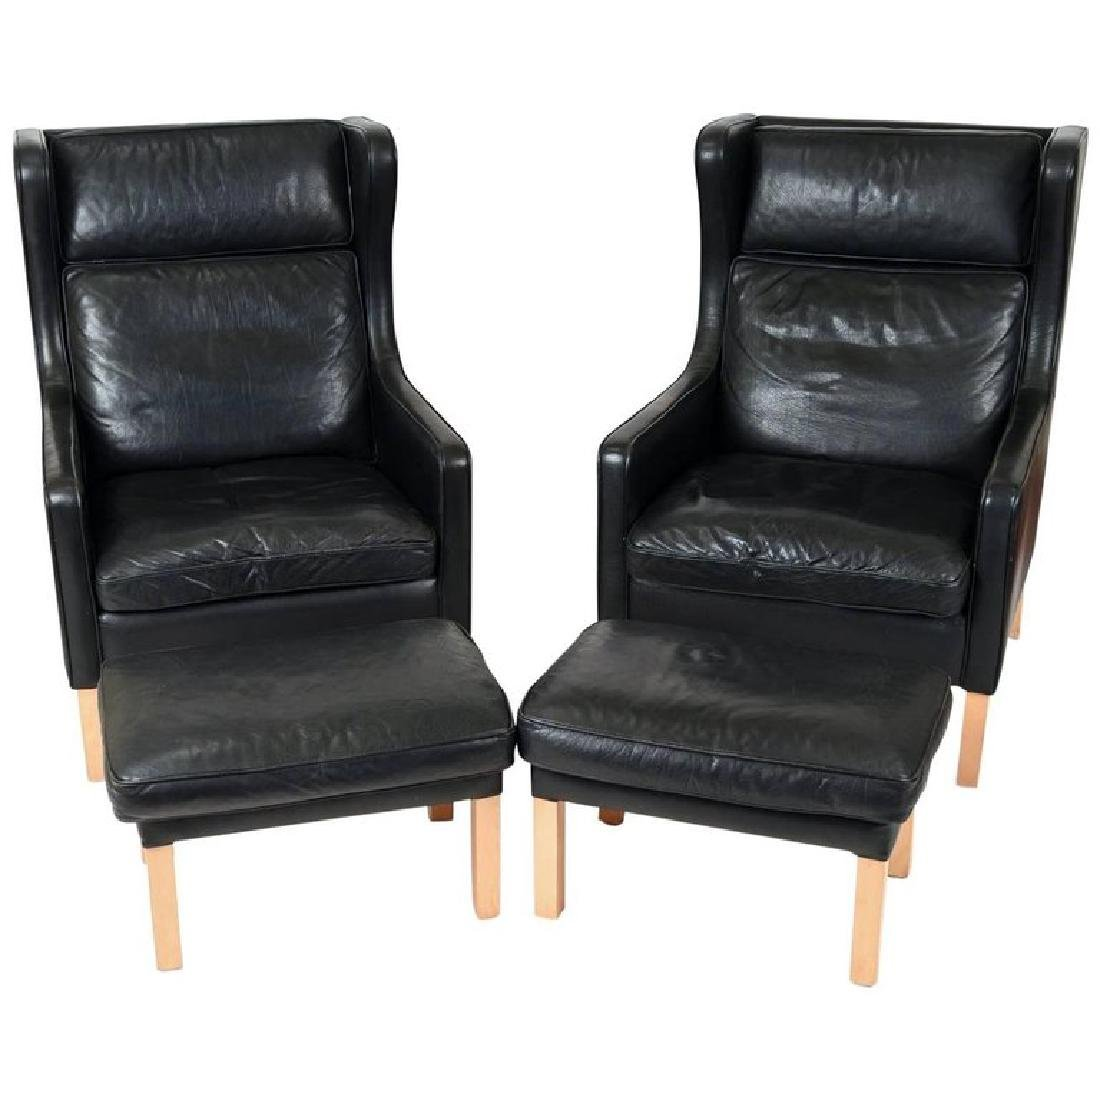 PAIR BORGE MOGENSEN STYLE LOUNGE CHAIRS & OTTOMANS - 2